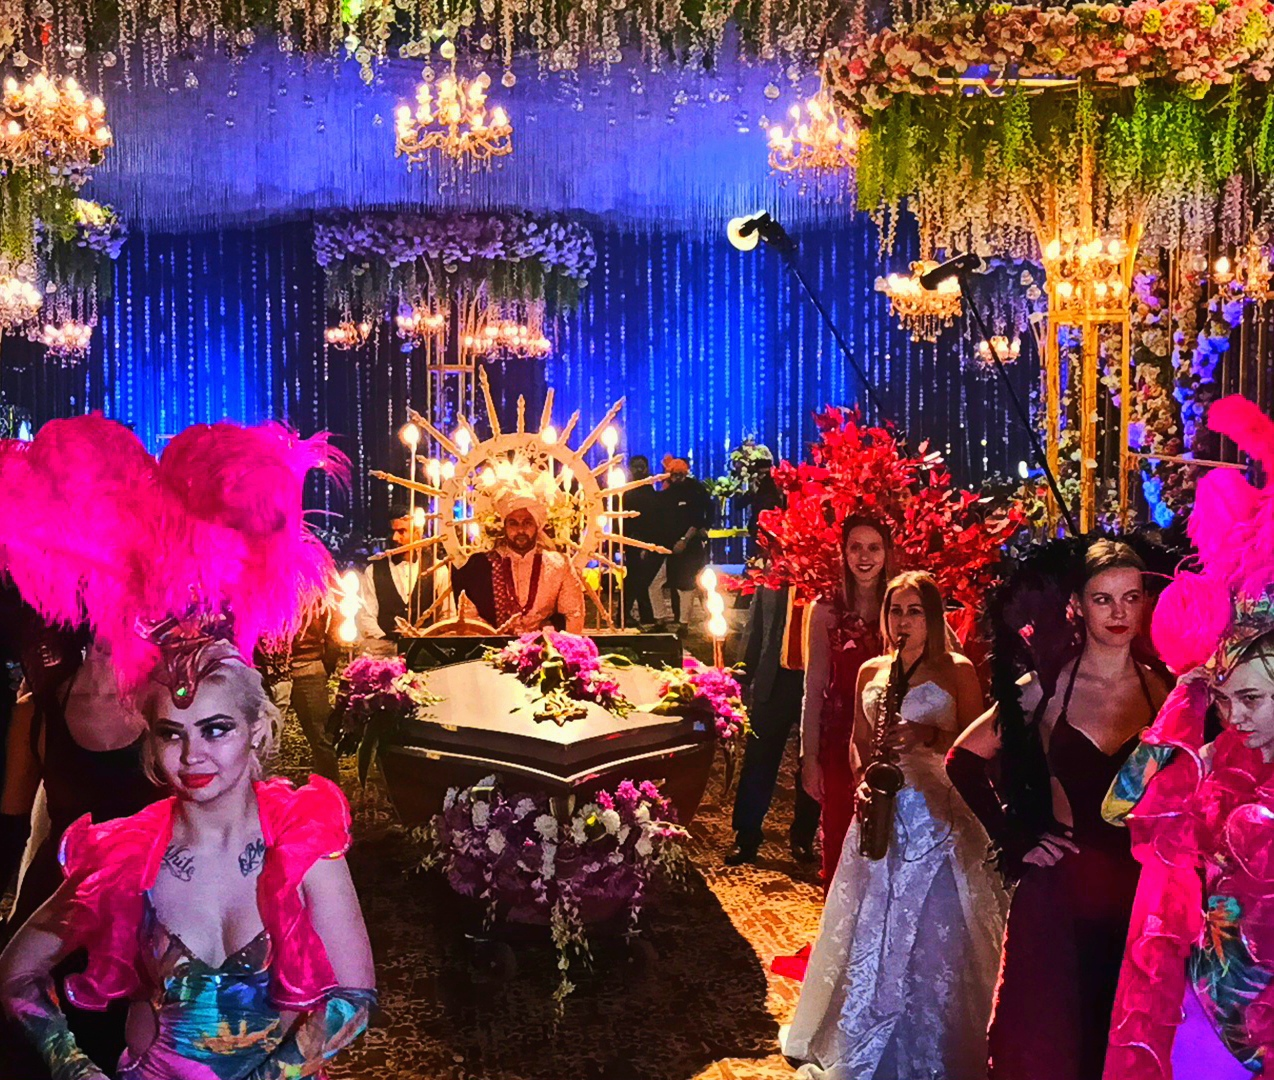 unique groom's entry with performers